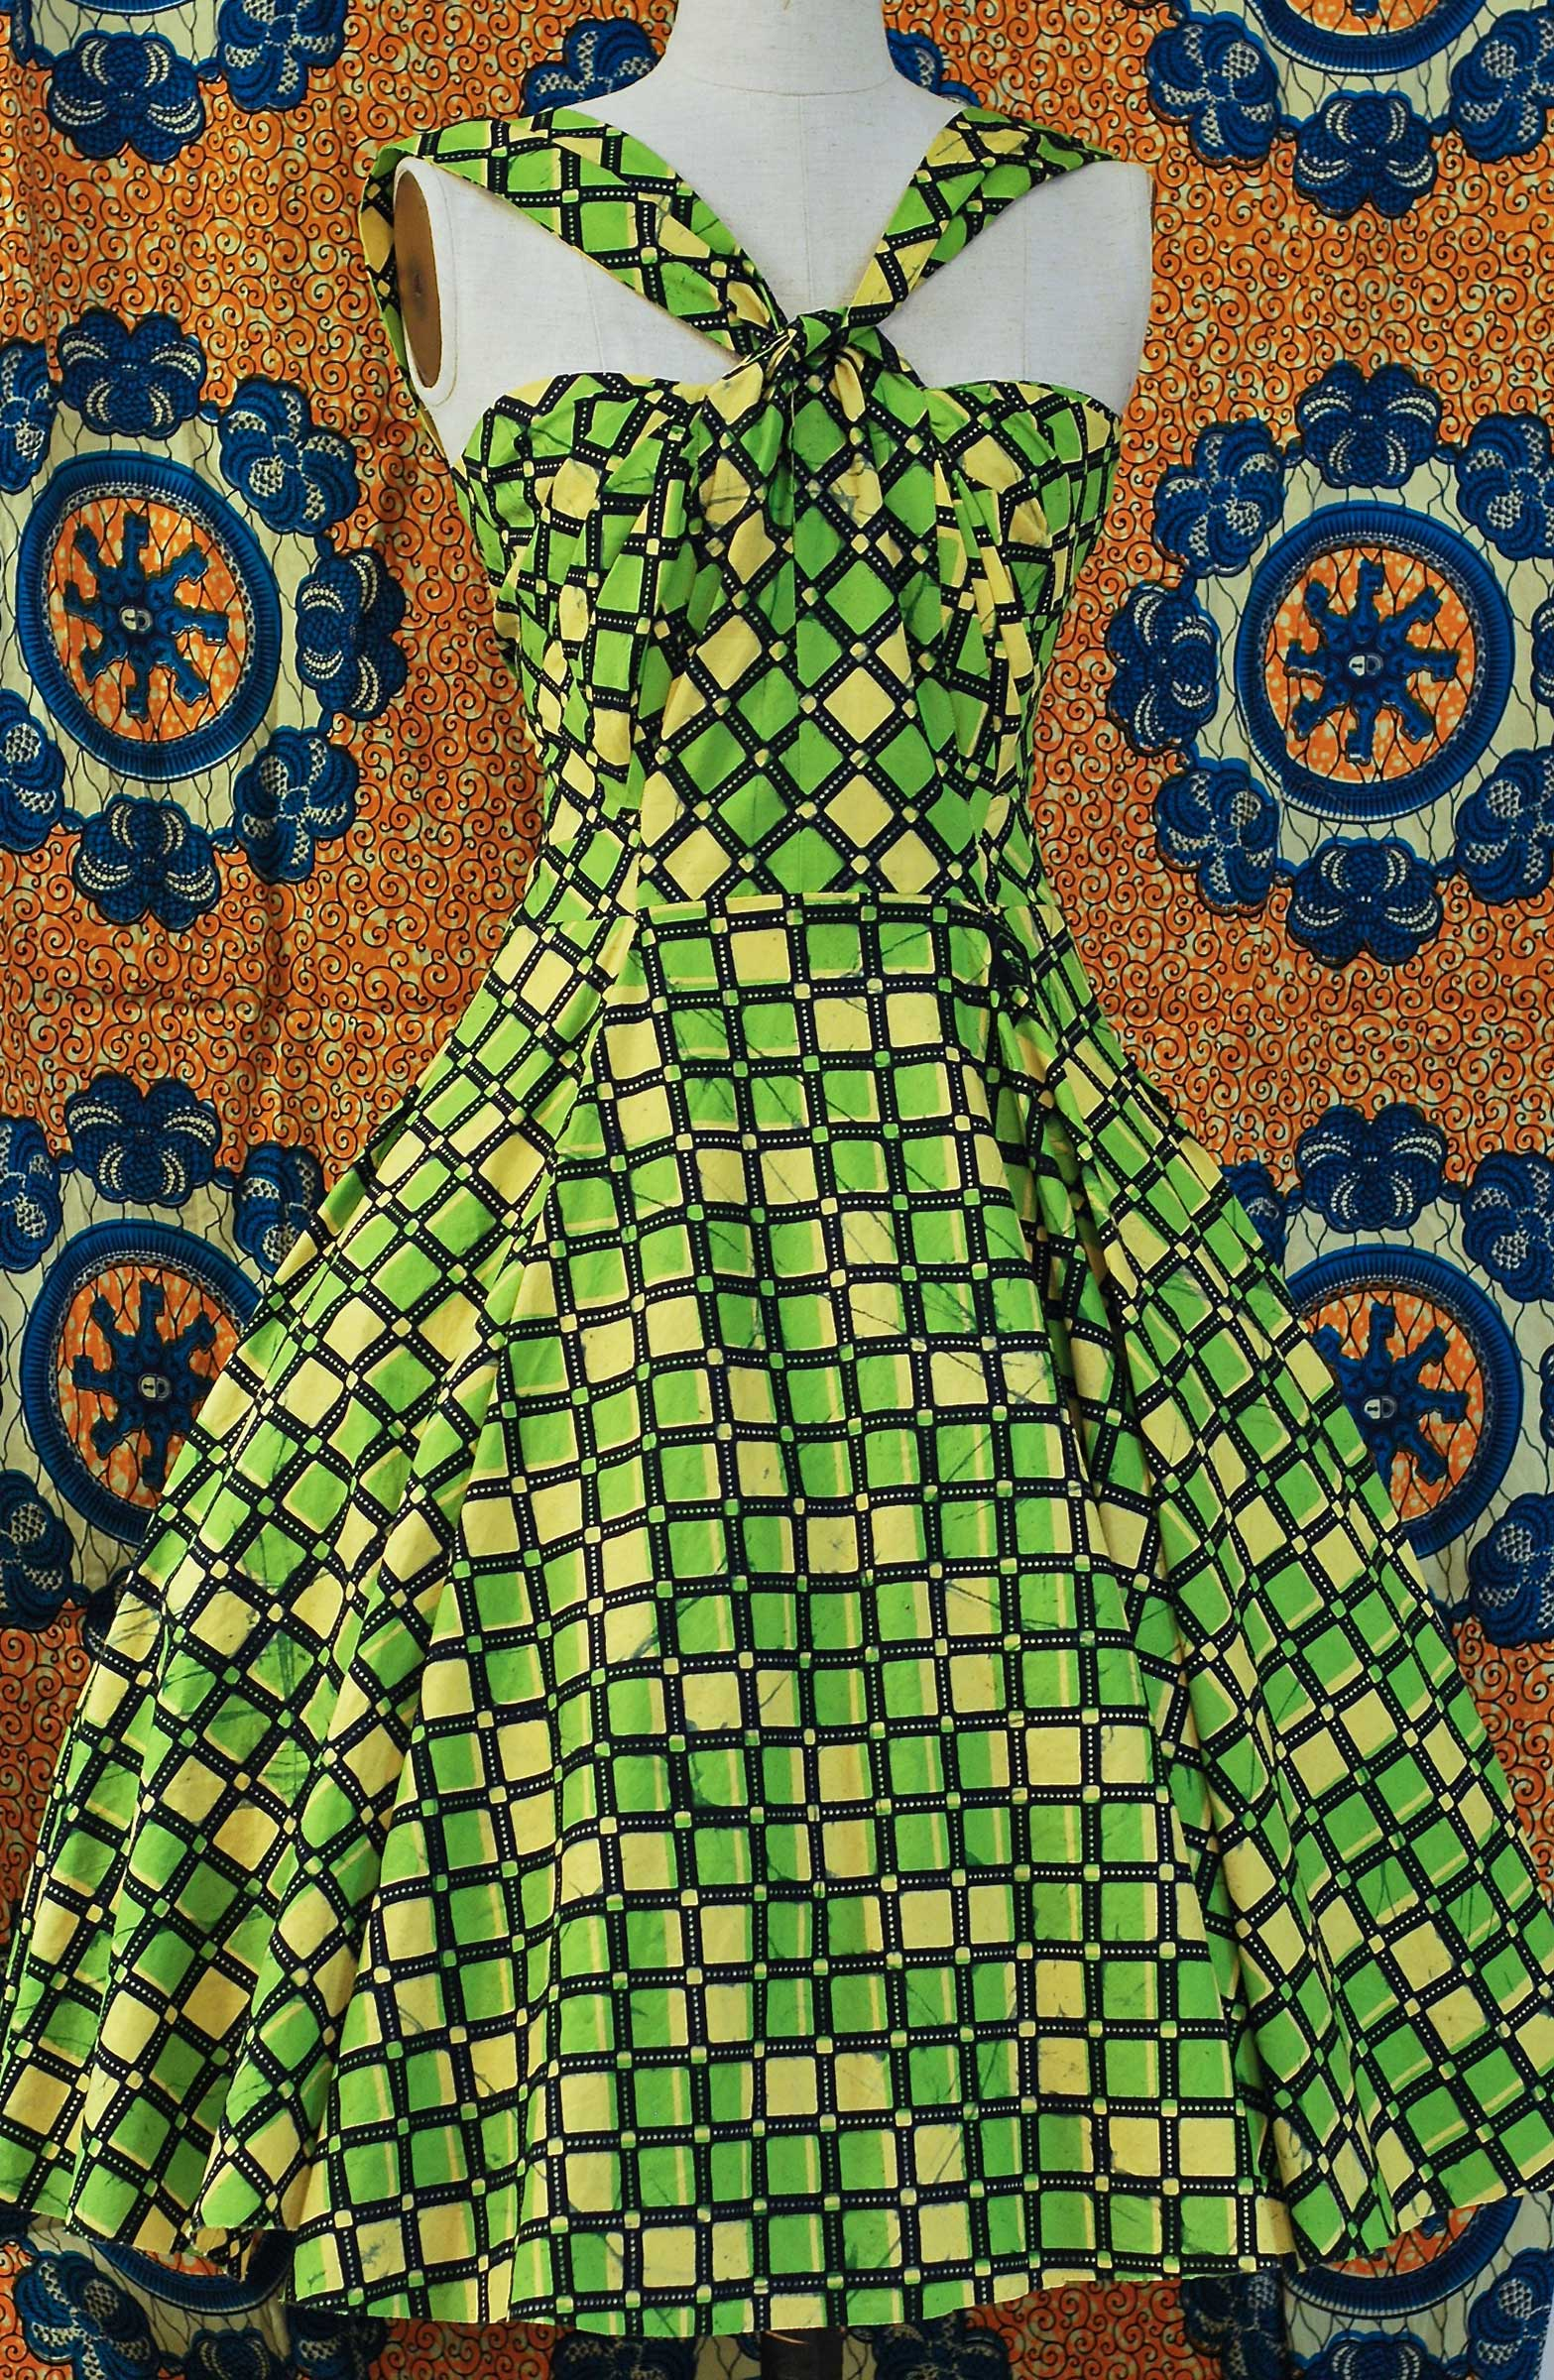 green-yellow-chelck-halter-dress.jpg